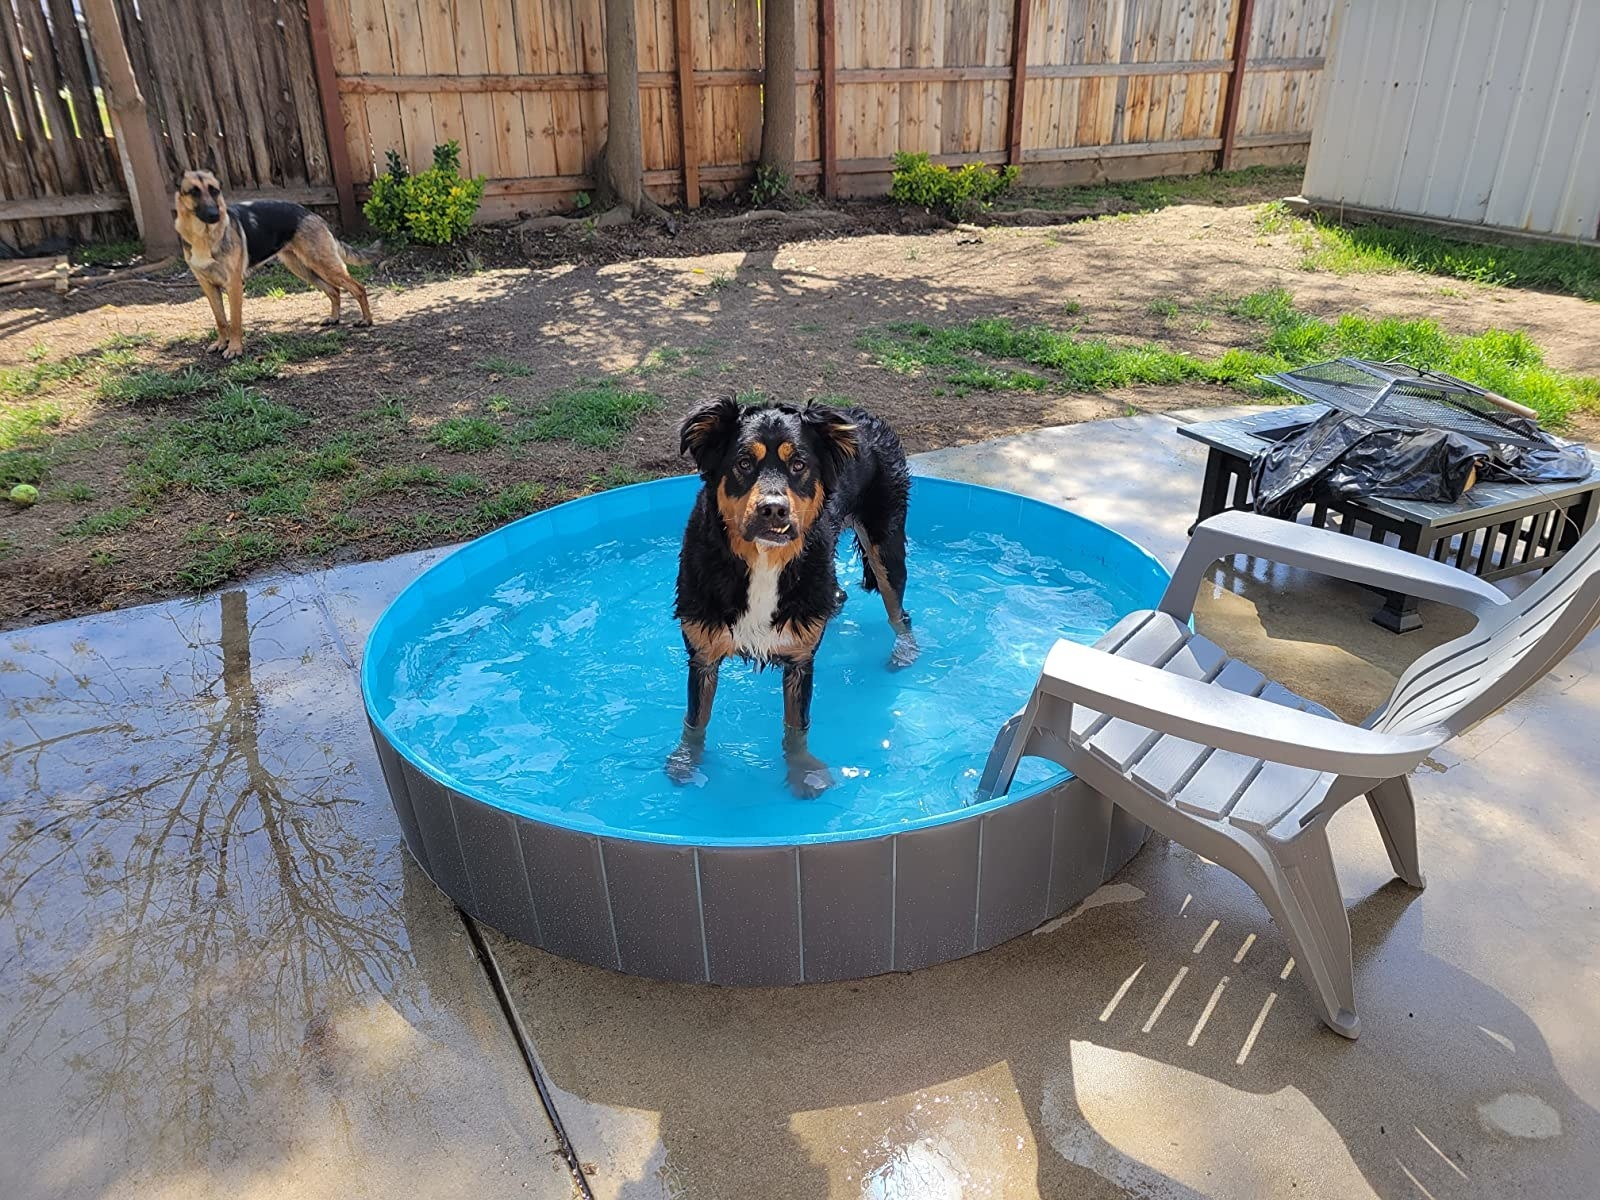 A medium-sized dog in the pool, which allows the water to reach to the top of its legs